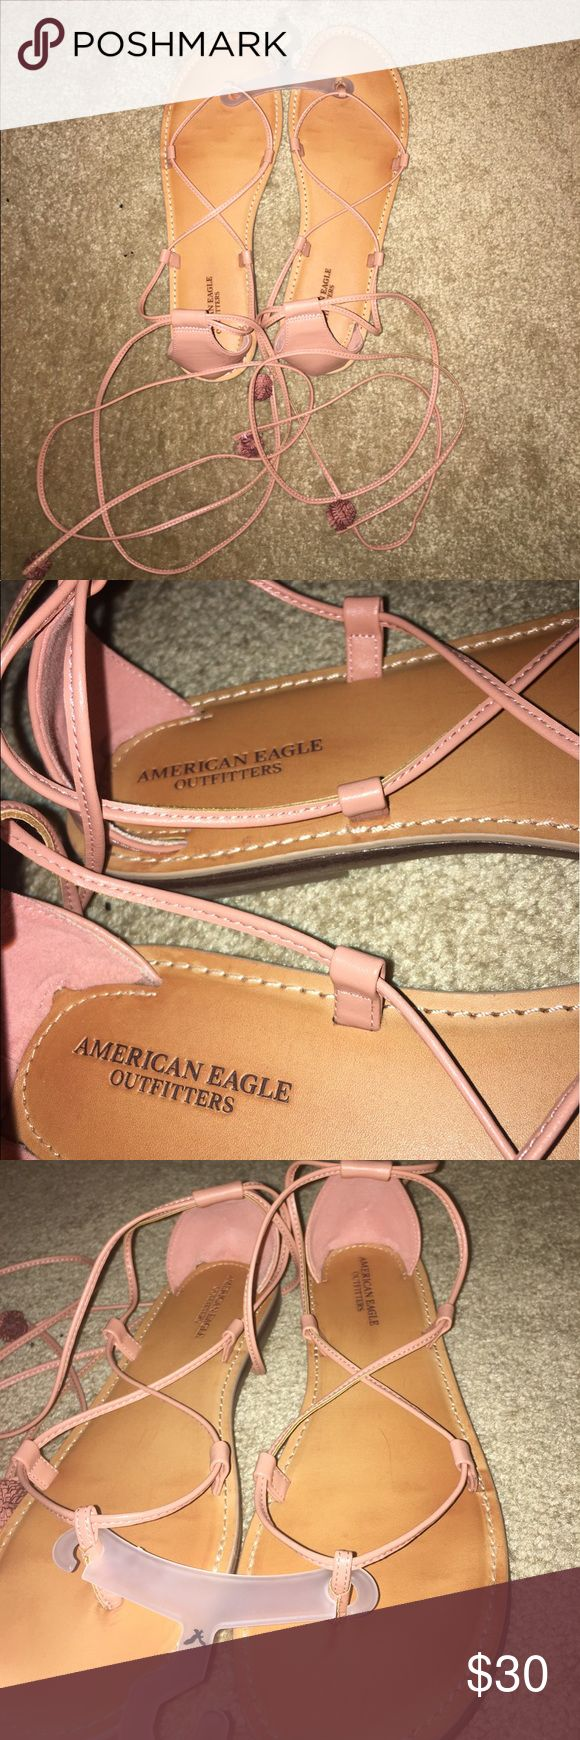 NEW!! Pink wrap around strappy AEO sandals!!! Worn once around for a few hours inside then decided they didn't look good on me so I'm selling them! Took tag off, but still has hanger which says 9/10 and size labels on bottom that say size 10 . They are very very cute! They work/fit better on a slimmer foot, but I'm sure anyone could make them work. They lace through the sides and wrap around your ankle, then you tie them to secure them. If you have any questions just let me know!! Lace up…